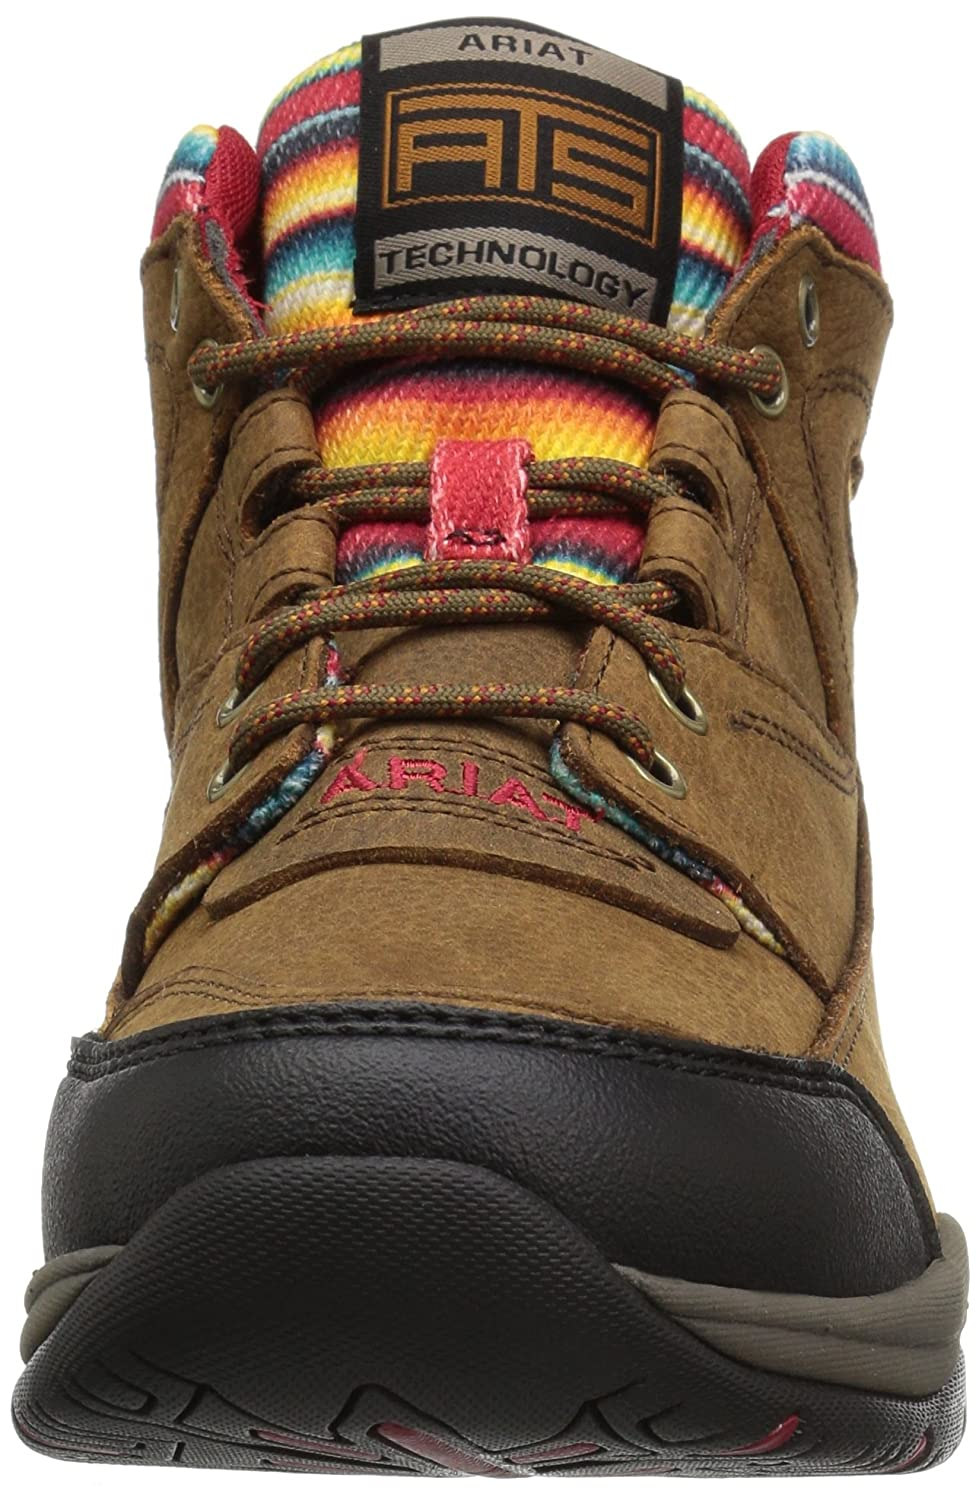 Ariat Women's Terrain Work Boot B01N9X8LSY 8 C US|Walnut/Serape